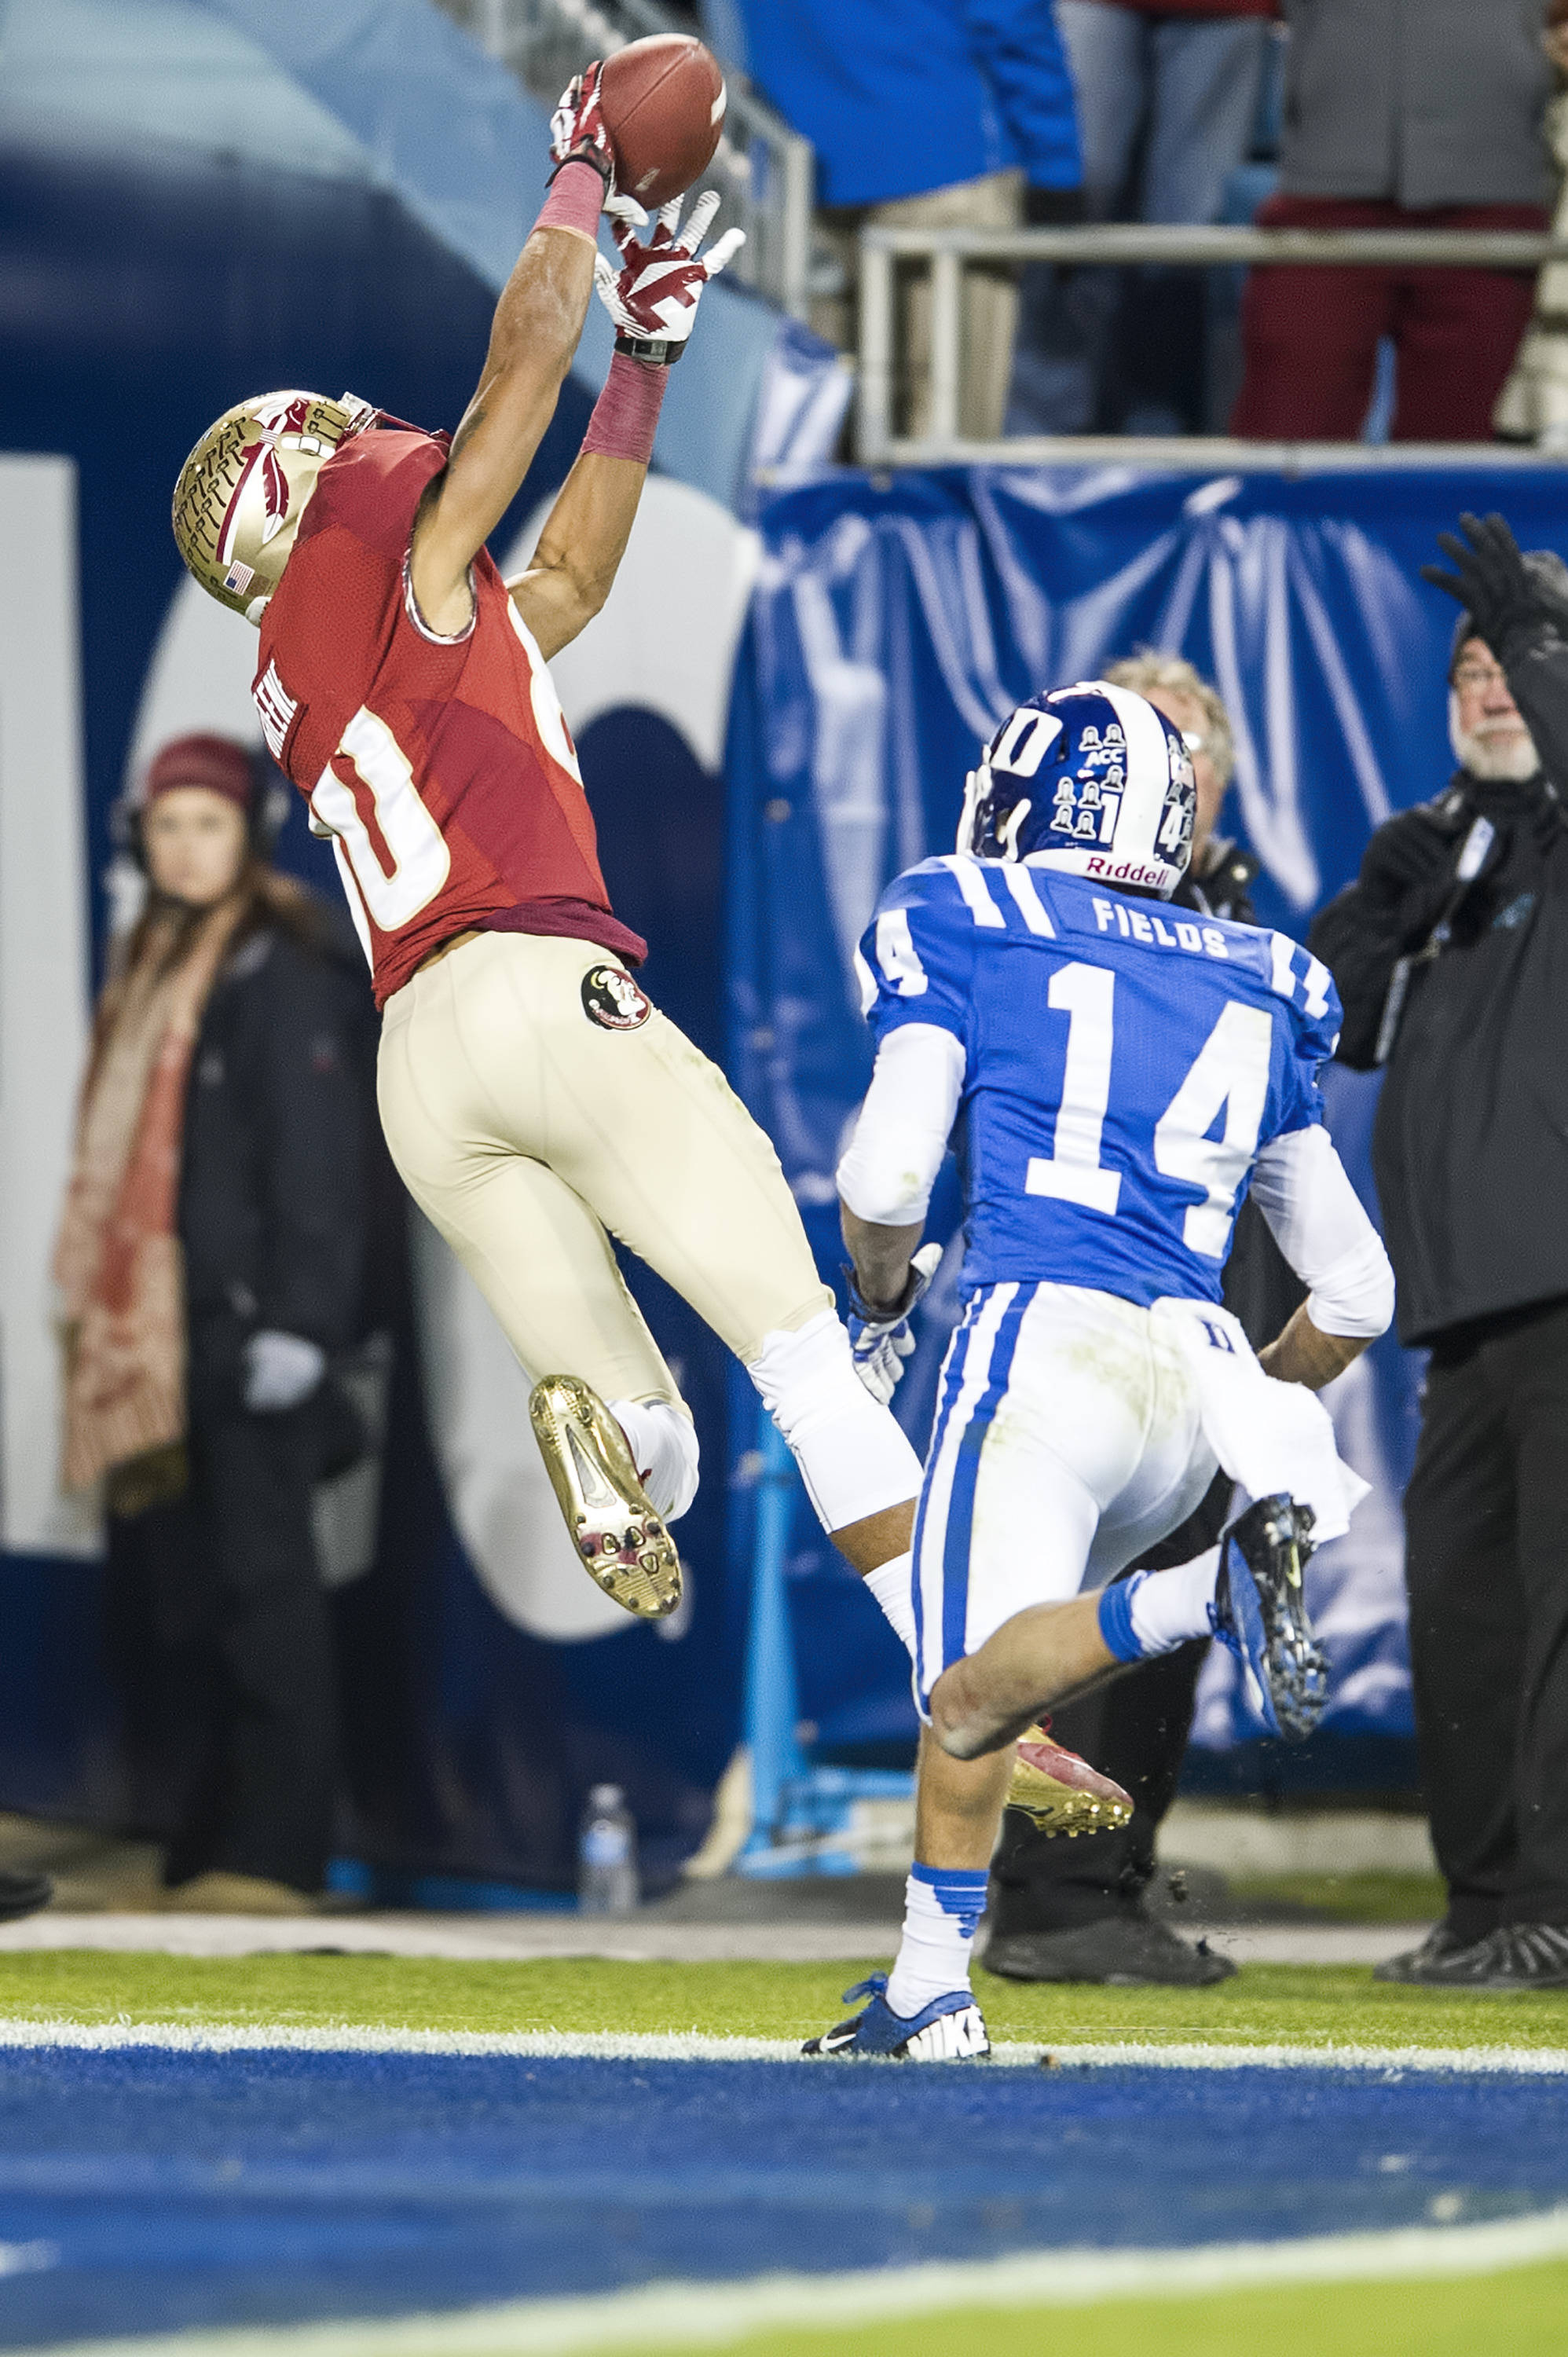 Rashad Greene makes a diving attempt on a TD pass